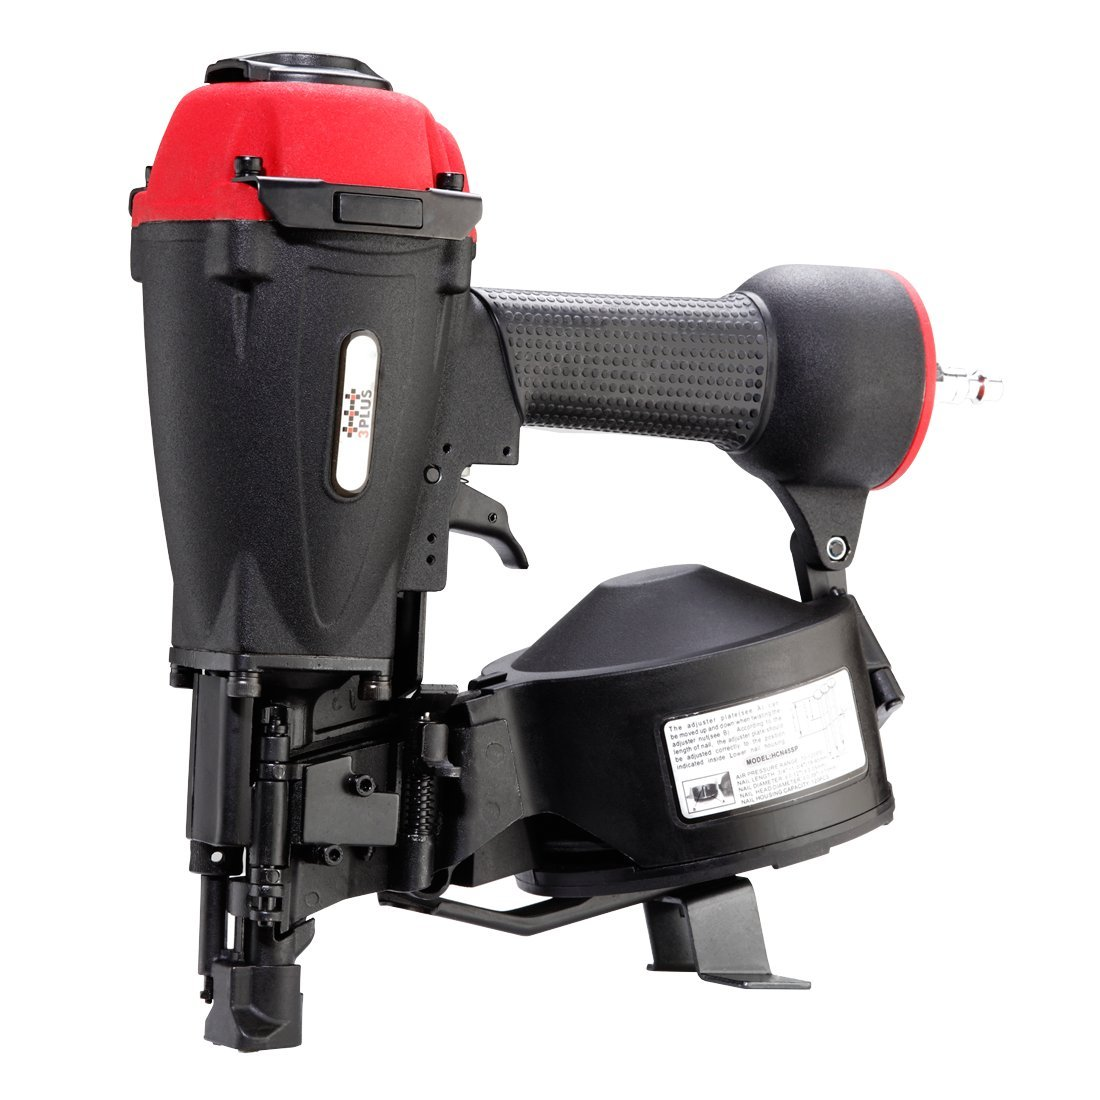 3PLUS HCN45SP 11 Gauge 15 Degree 3/4'' to 1-3/4'' Coil Roofing Nailer